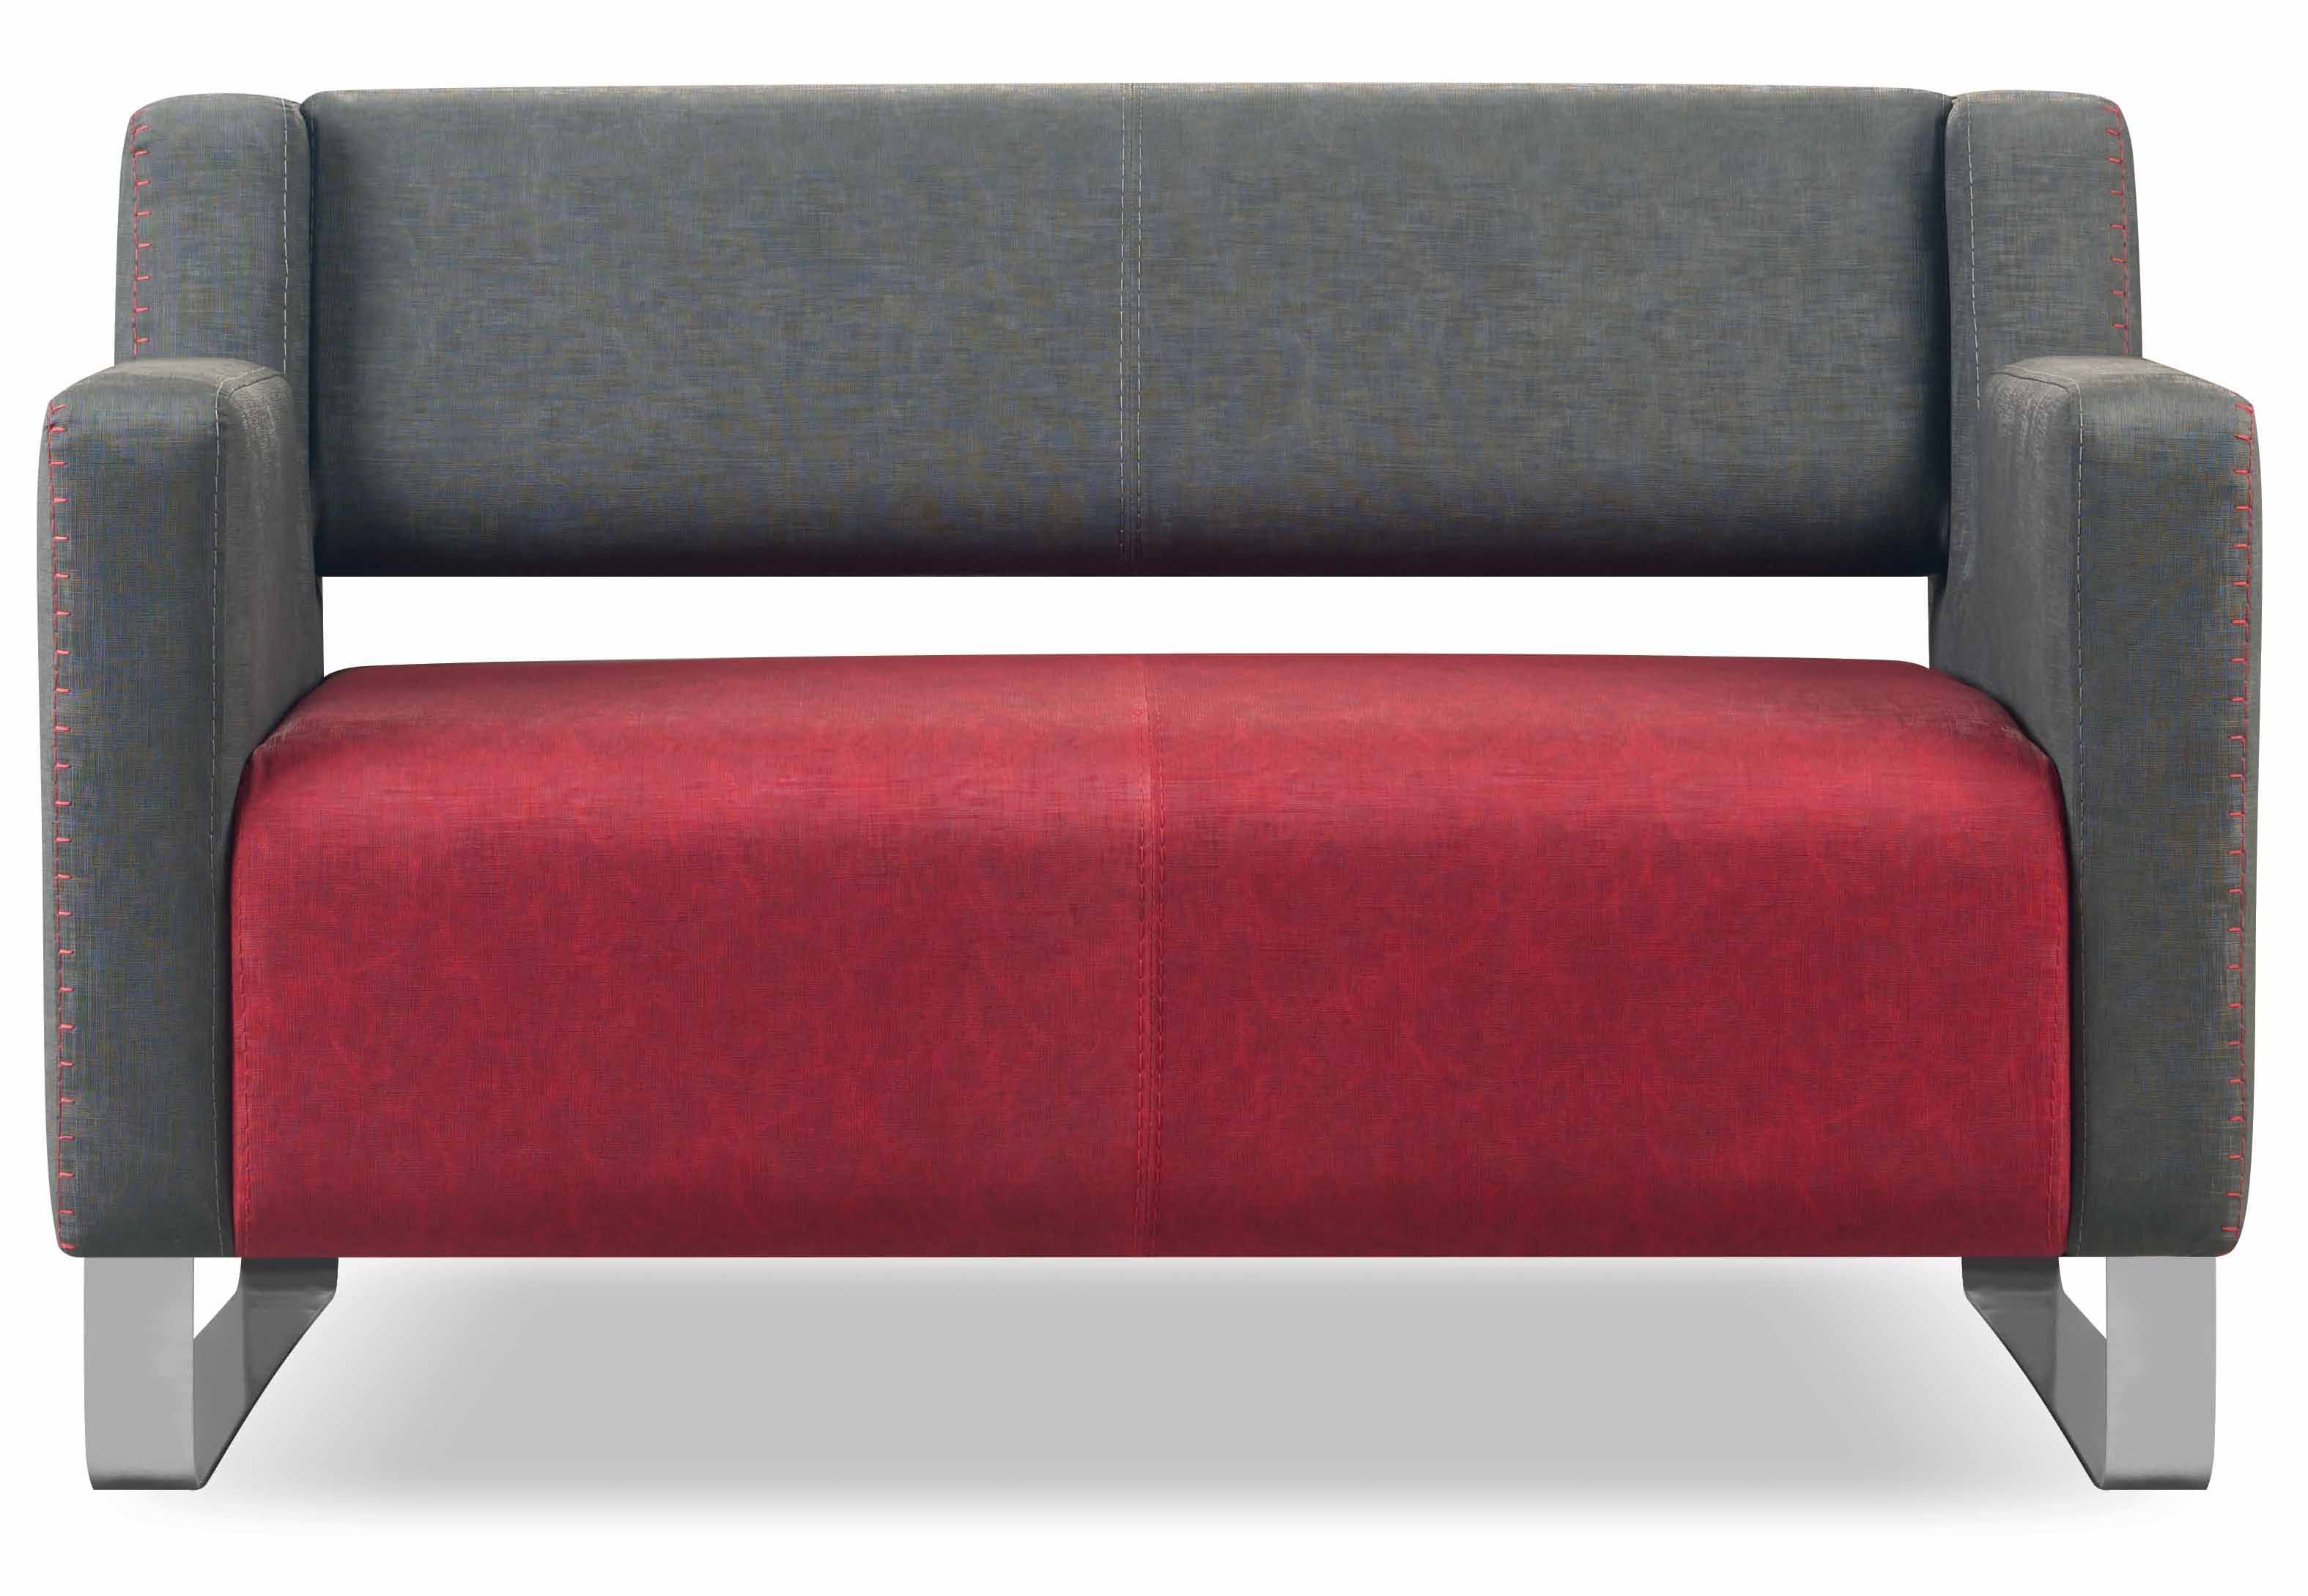 mango sofa 2 sitzer grau bordeaux g nstig kaufen m bel star. Black Bedroom Furniture Sets. Home Design Ideas